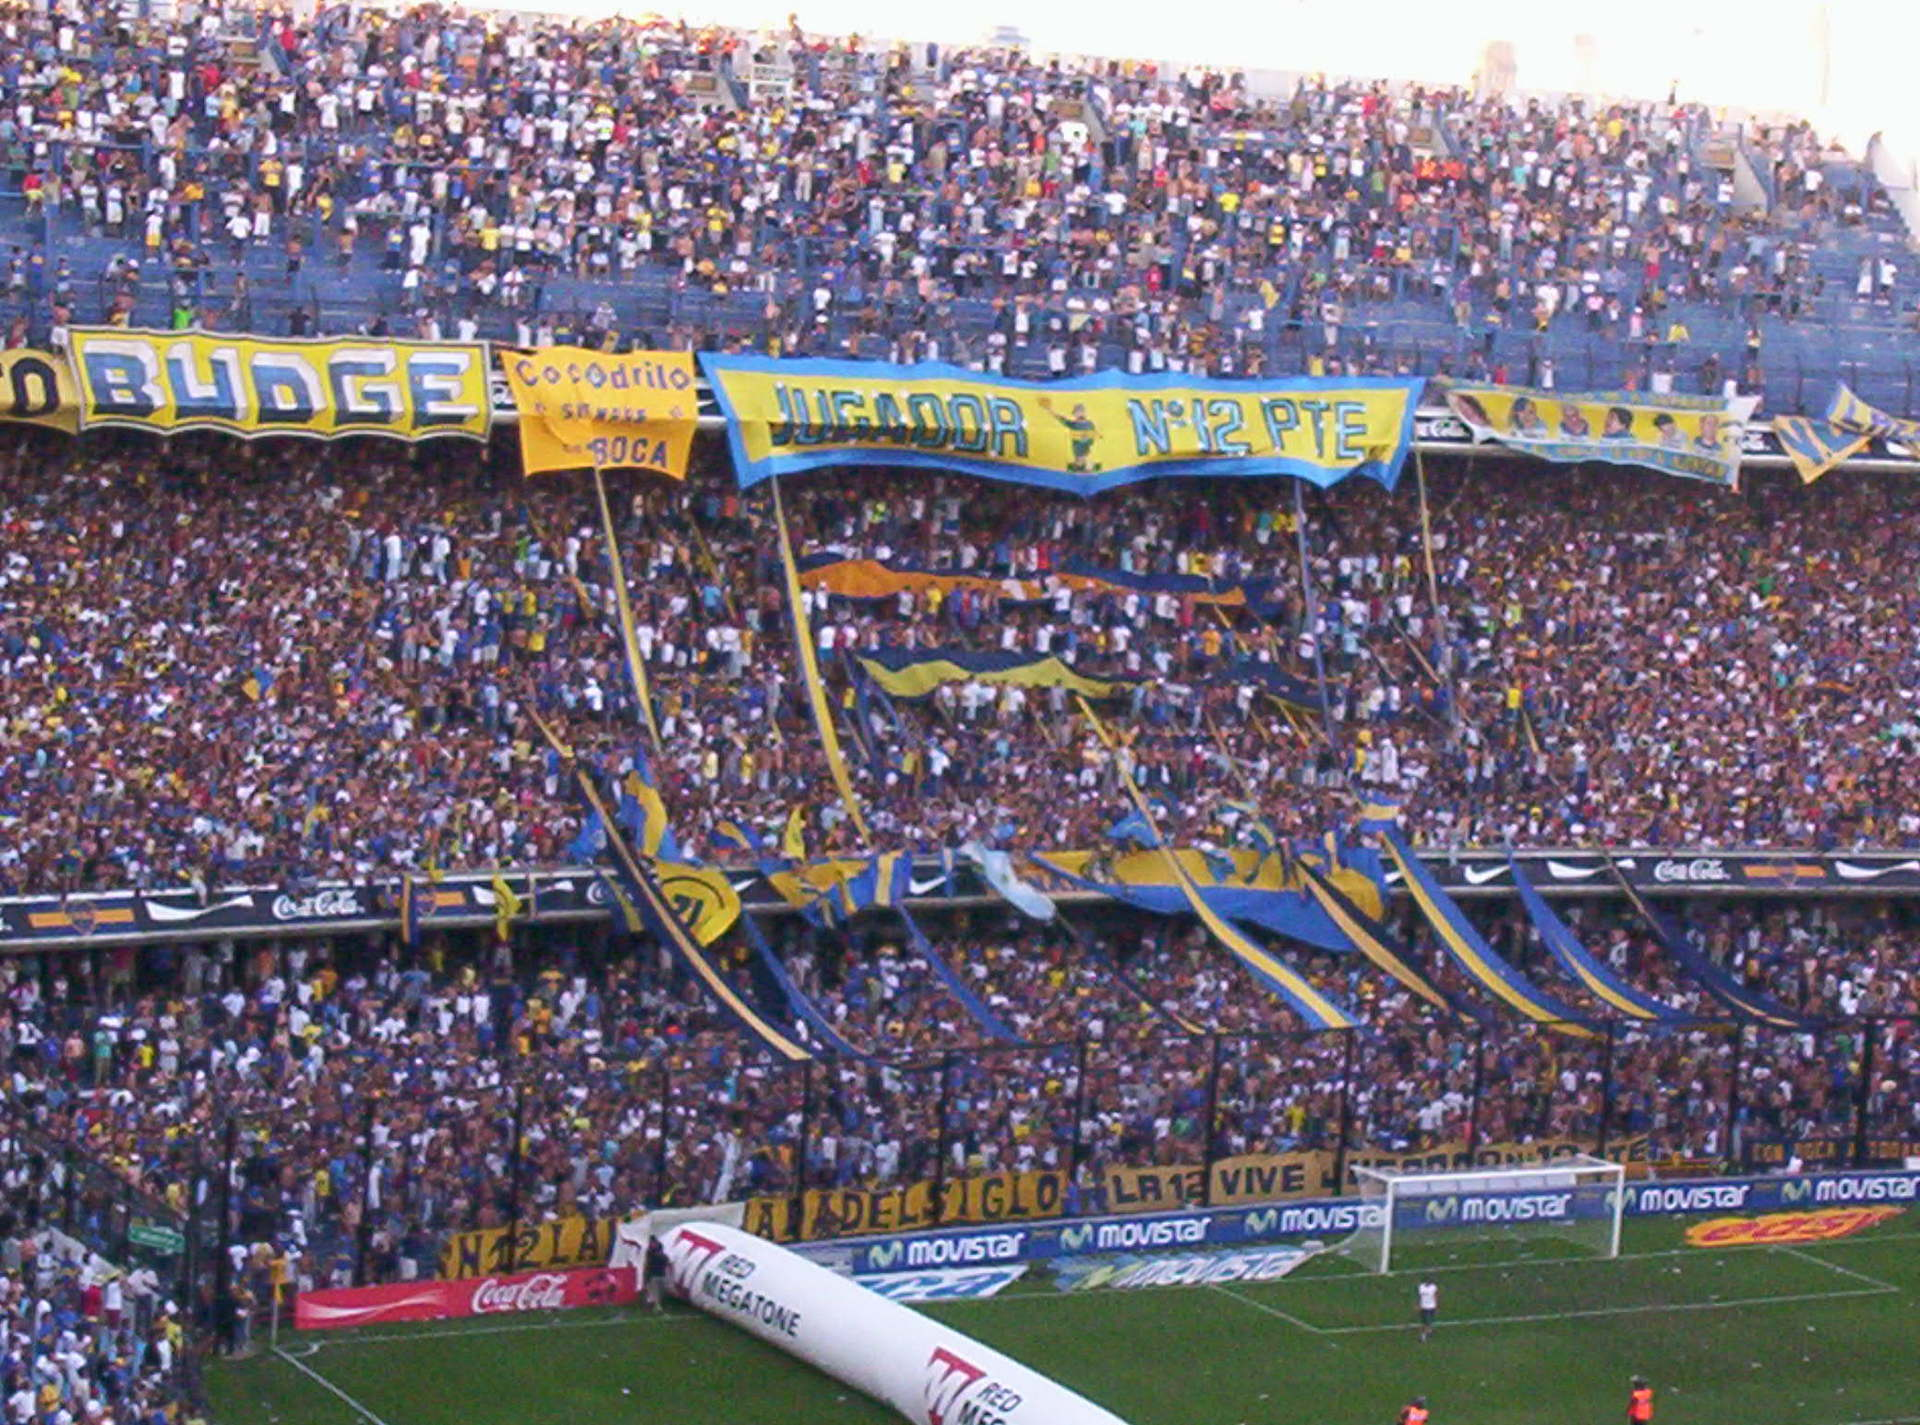 Boca Juniors: Boca Juniors Images Boca Junior Stadium HD Wallpaper And